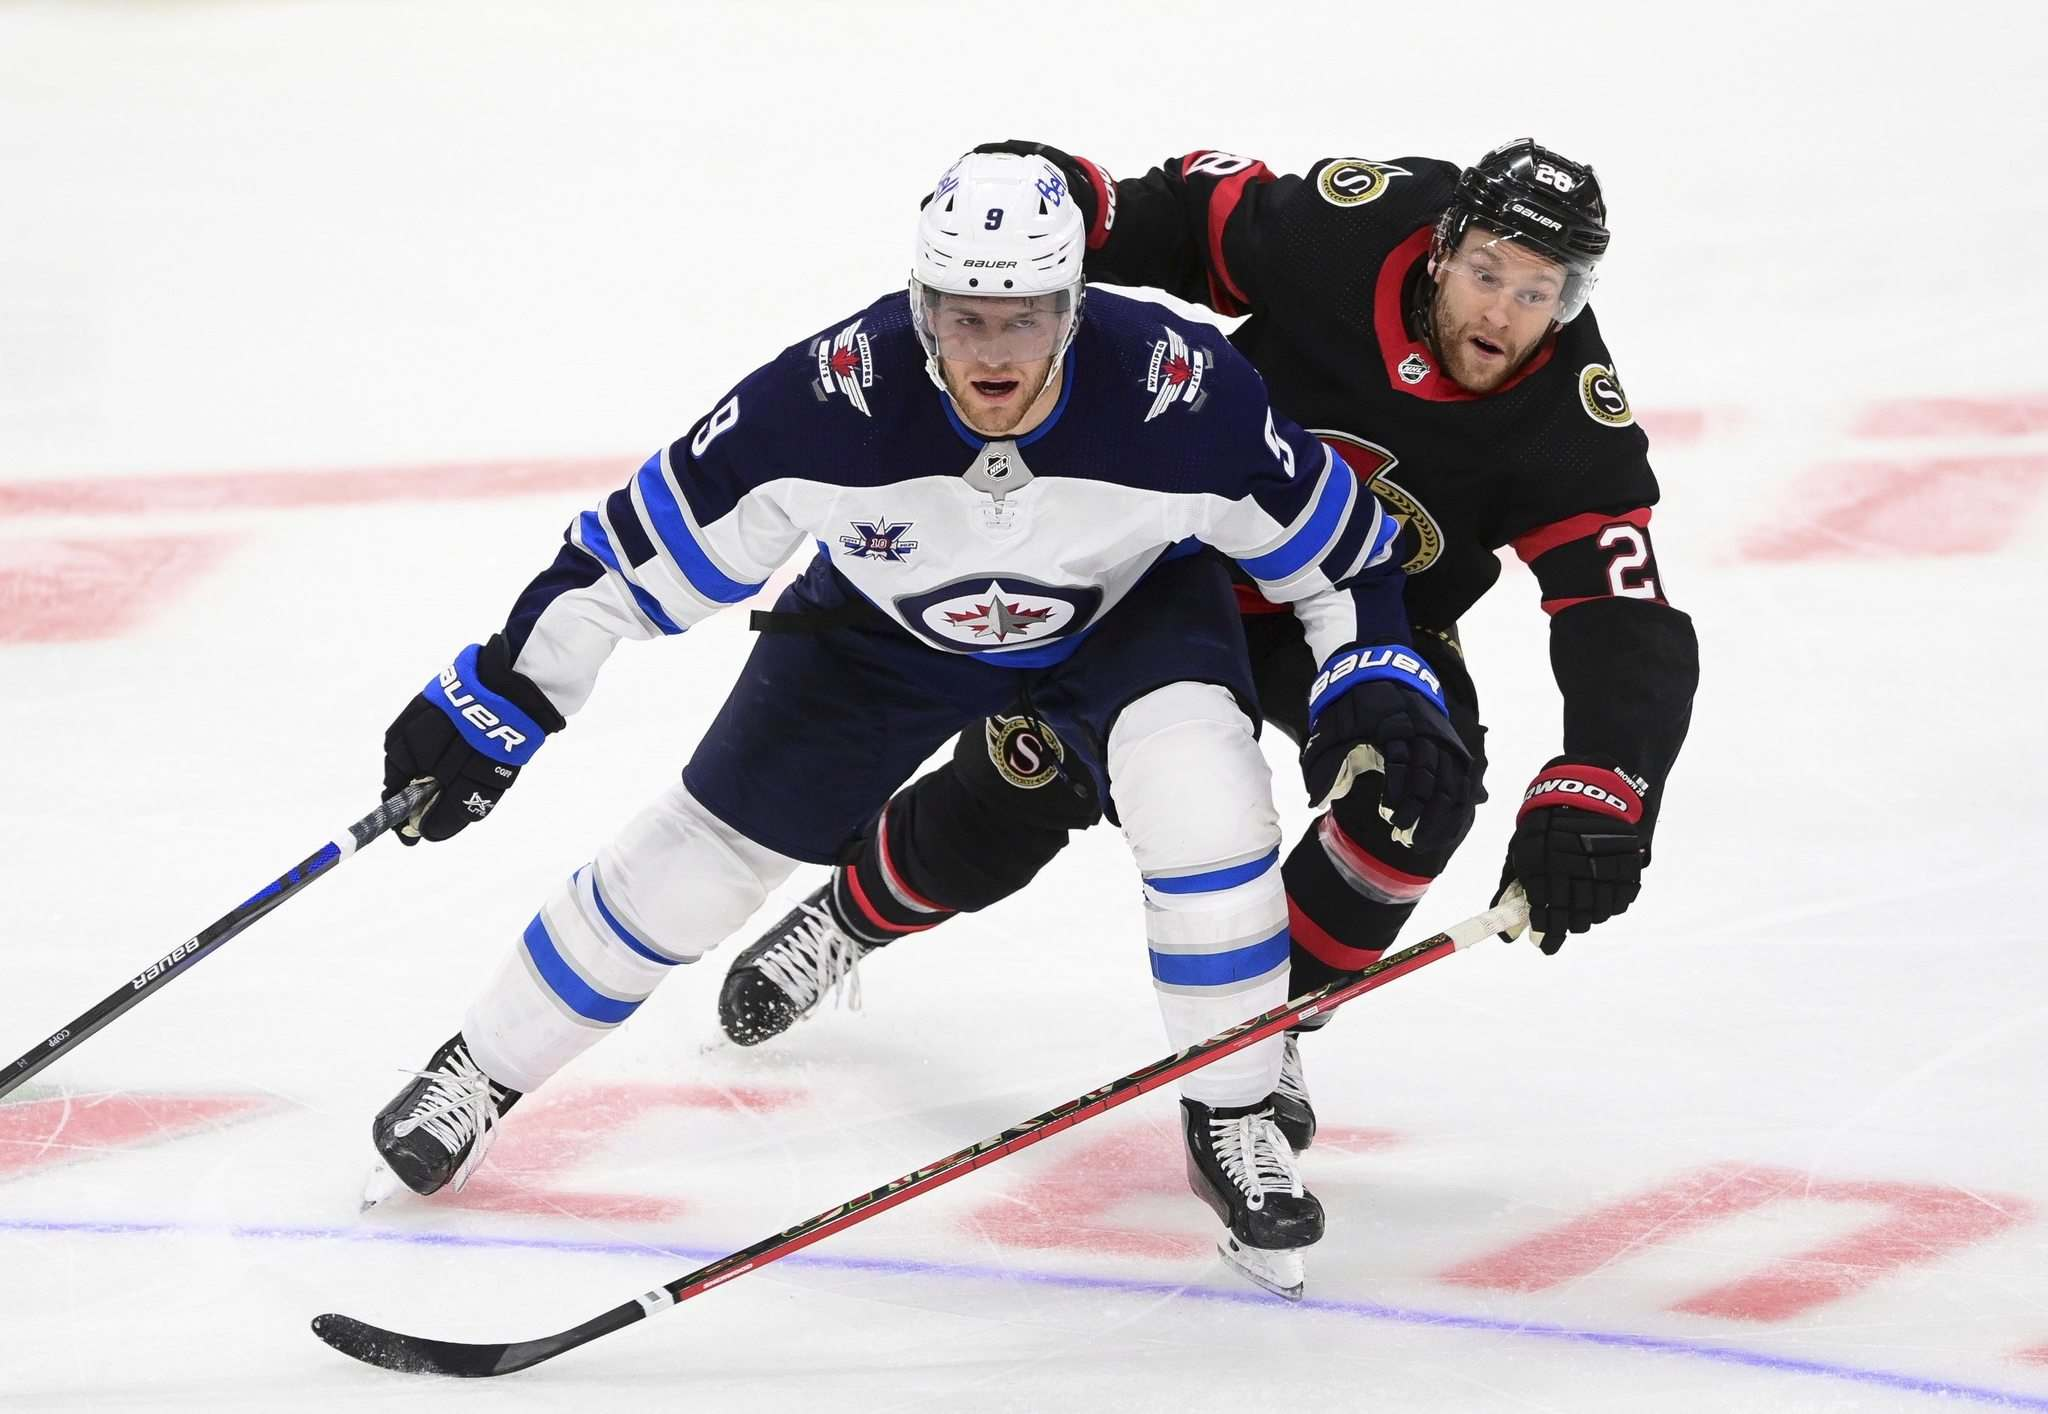 Jets GM Kevin Cheveldayoff is in a tough spot when it comes to negotiating a deal with versatile forward Andrew Copp (left) and remaining under the NHL's salary cap. (Sean Kilpatrick / The Canadian Press files)